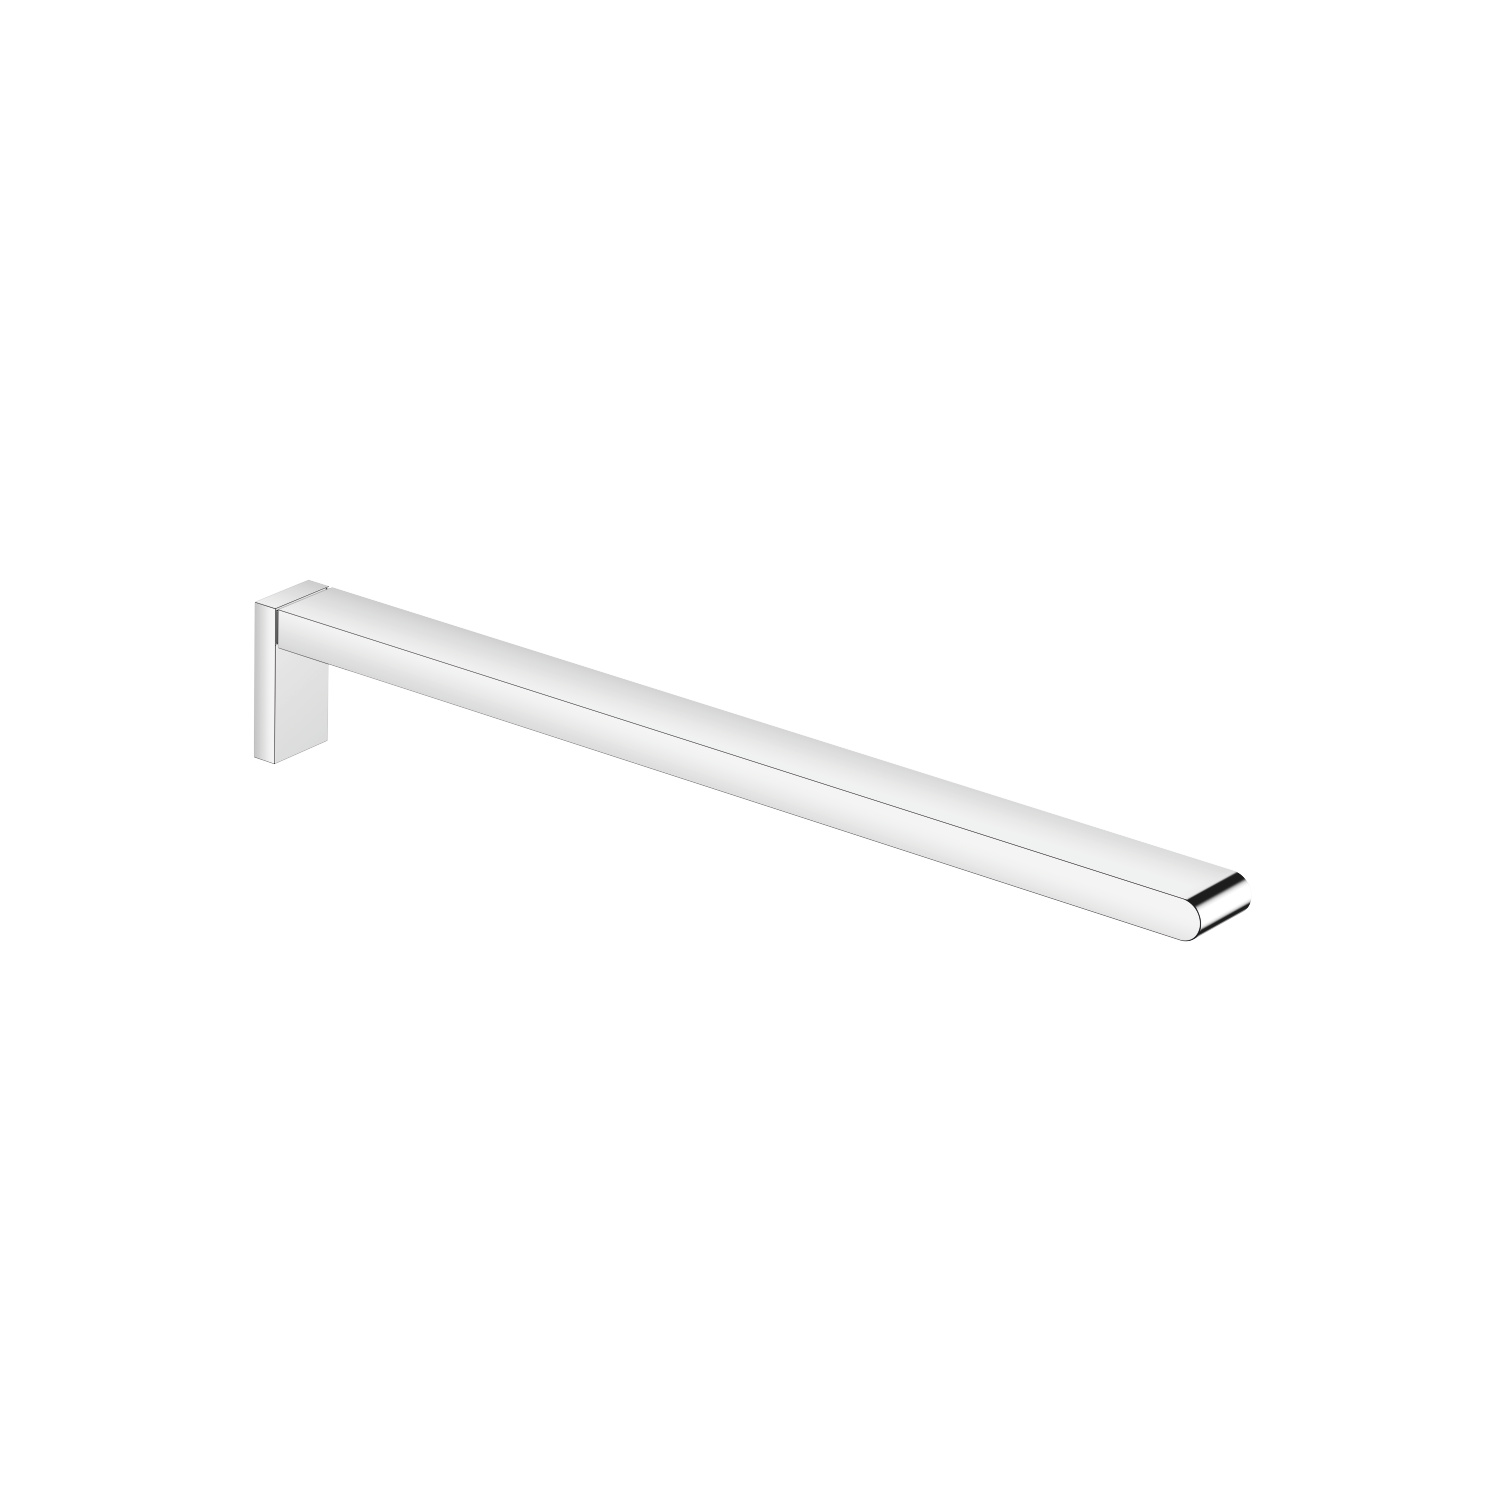 Towel bar 1-piece non-swivel - polished chrome